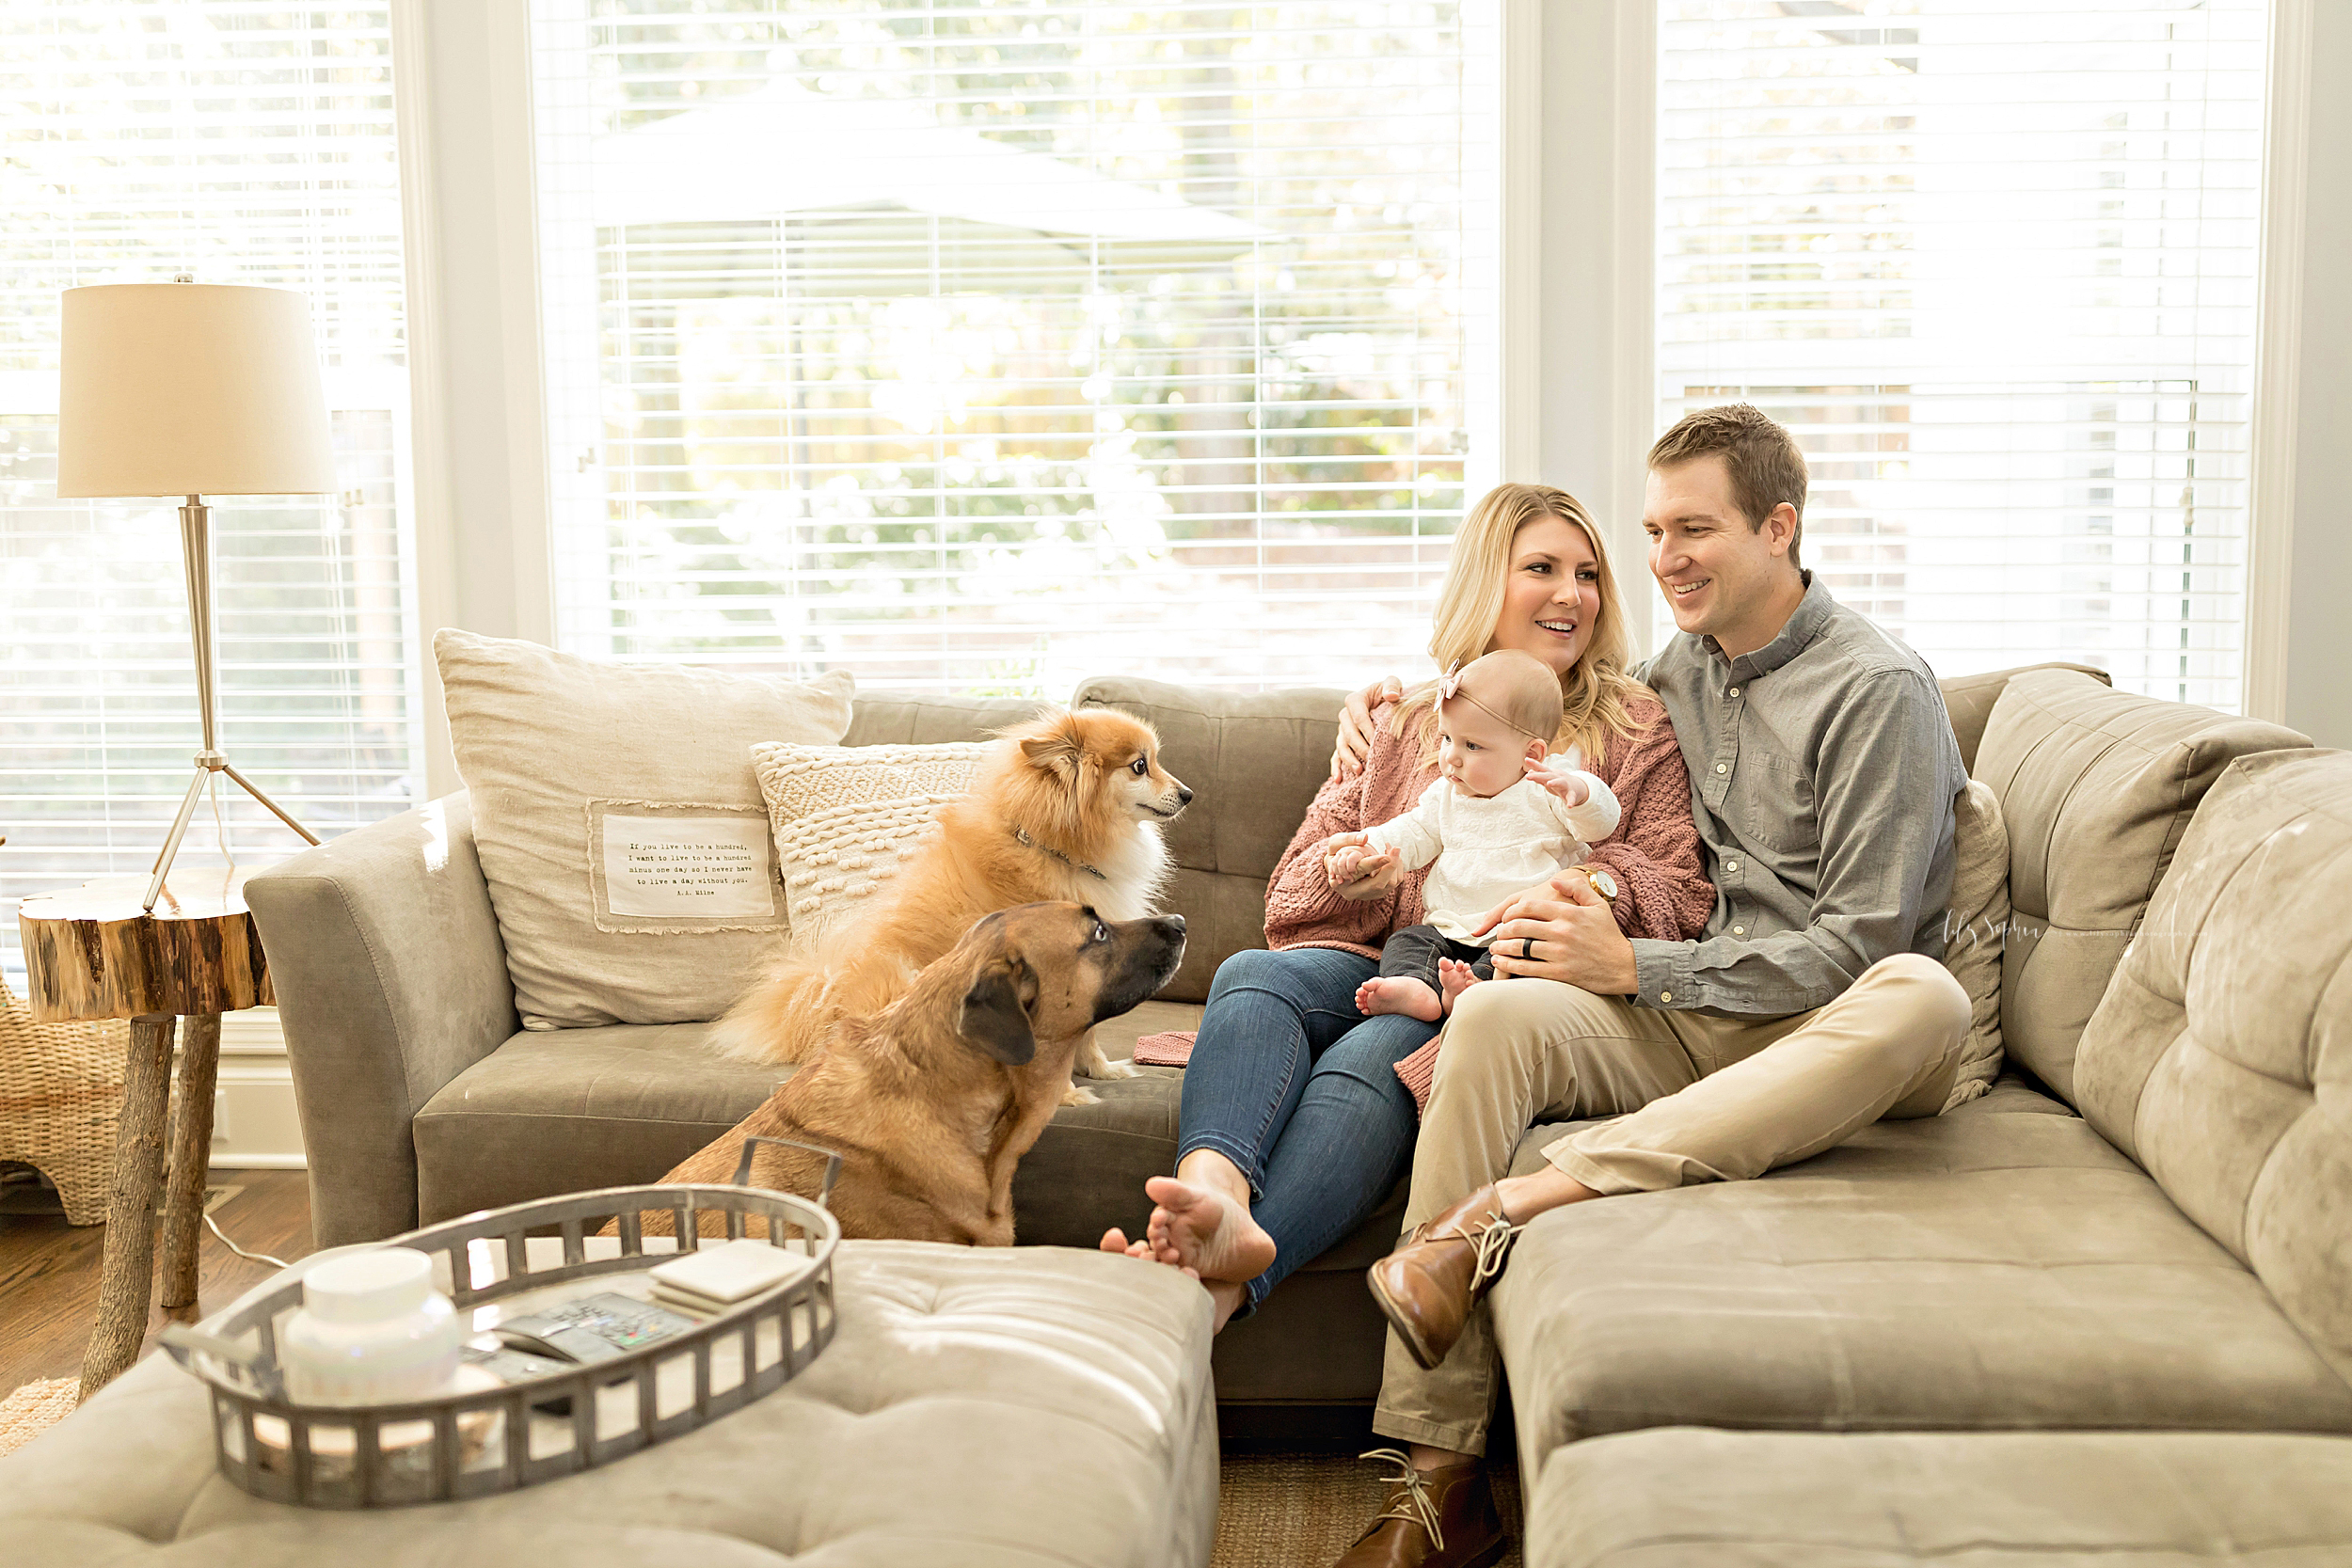 atlanta-midtown-brookhaven-ashford-dunwoody-virginia-highlands-roswell-decatur-lily-sophia-photography-in-home-six-month-milestone-family-lifestyle-session-sandy-springs_0648.jpg